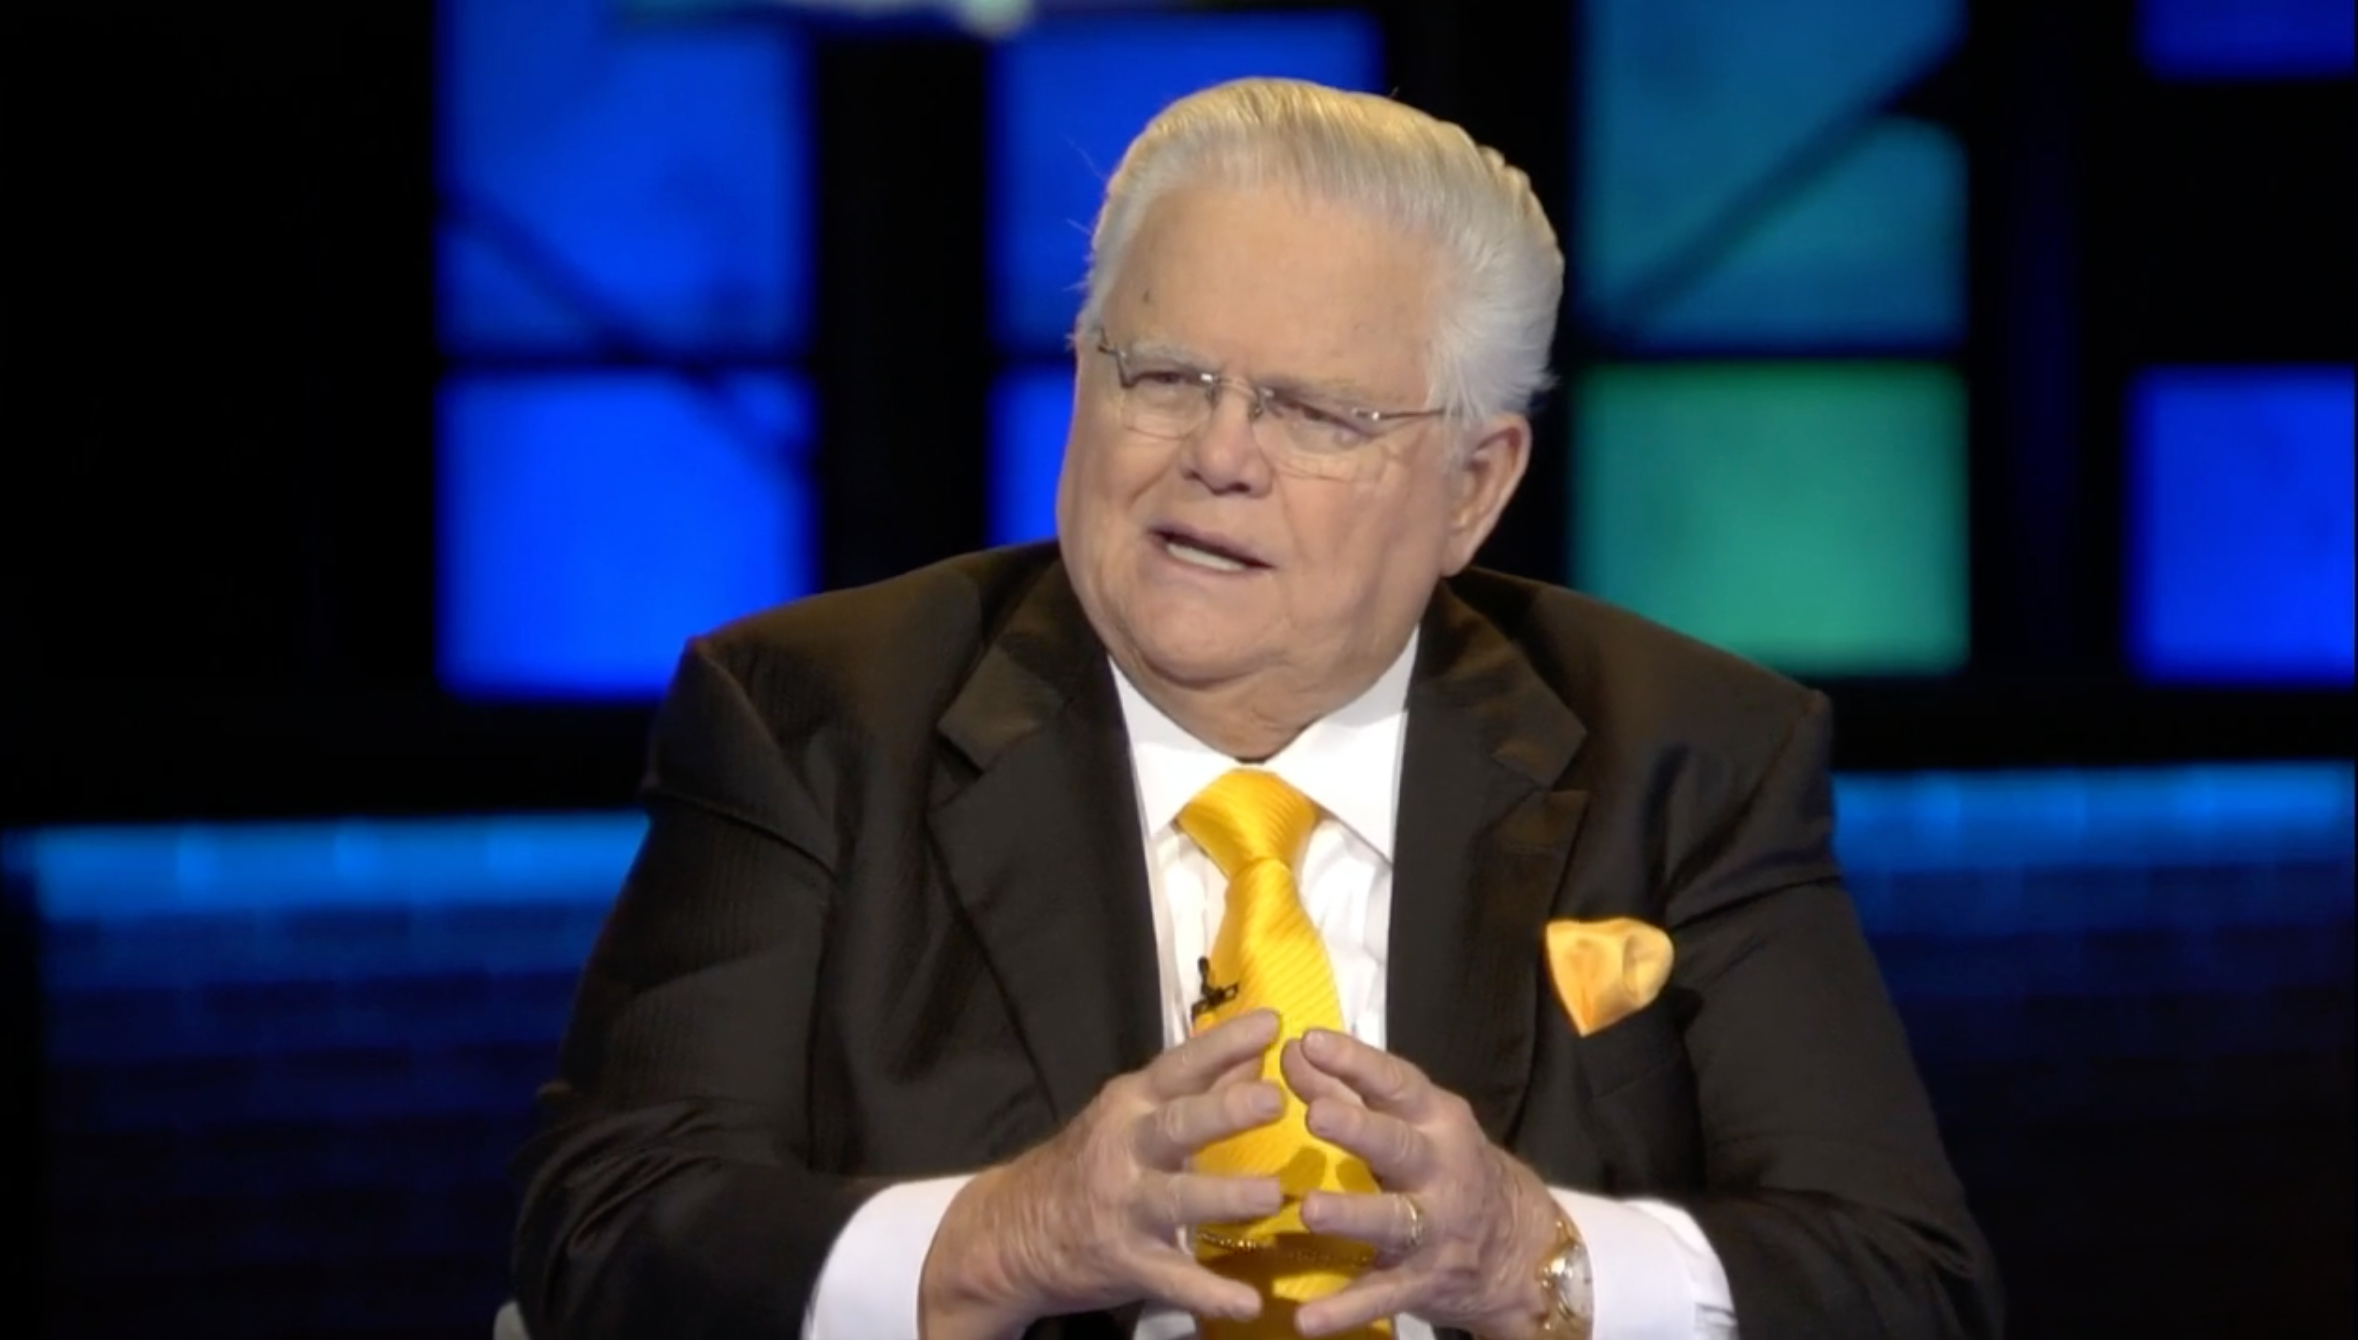 Watch Praise | John Hagee | 7/13/18